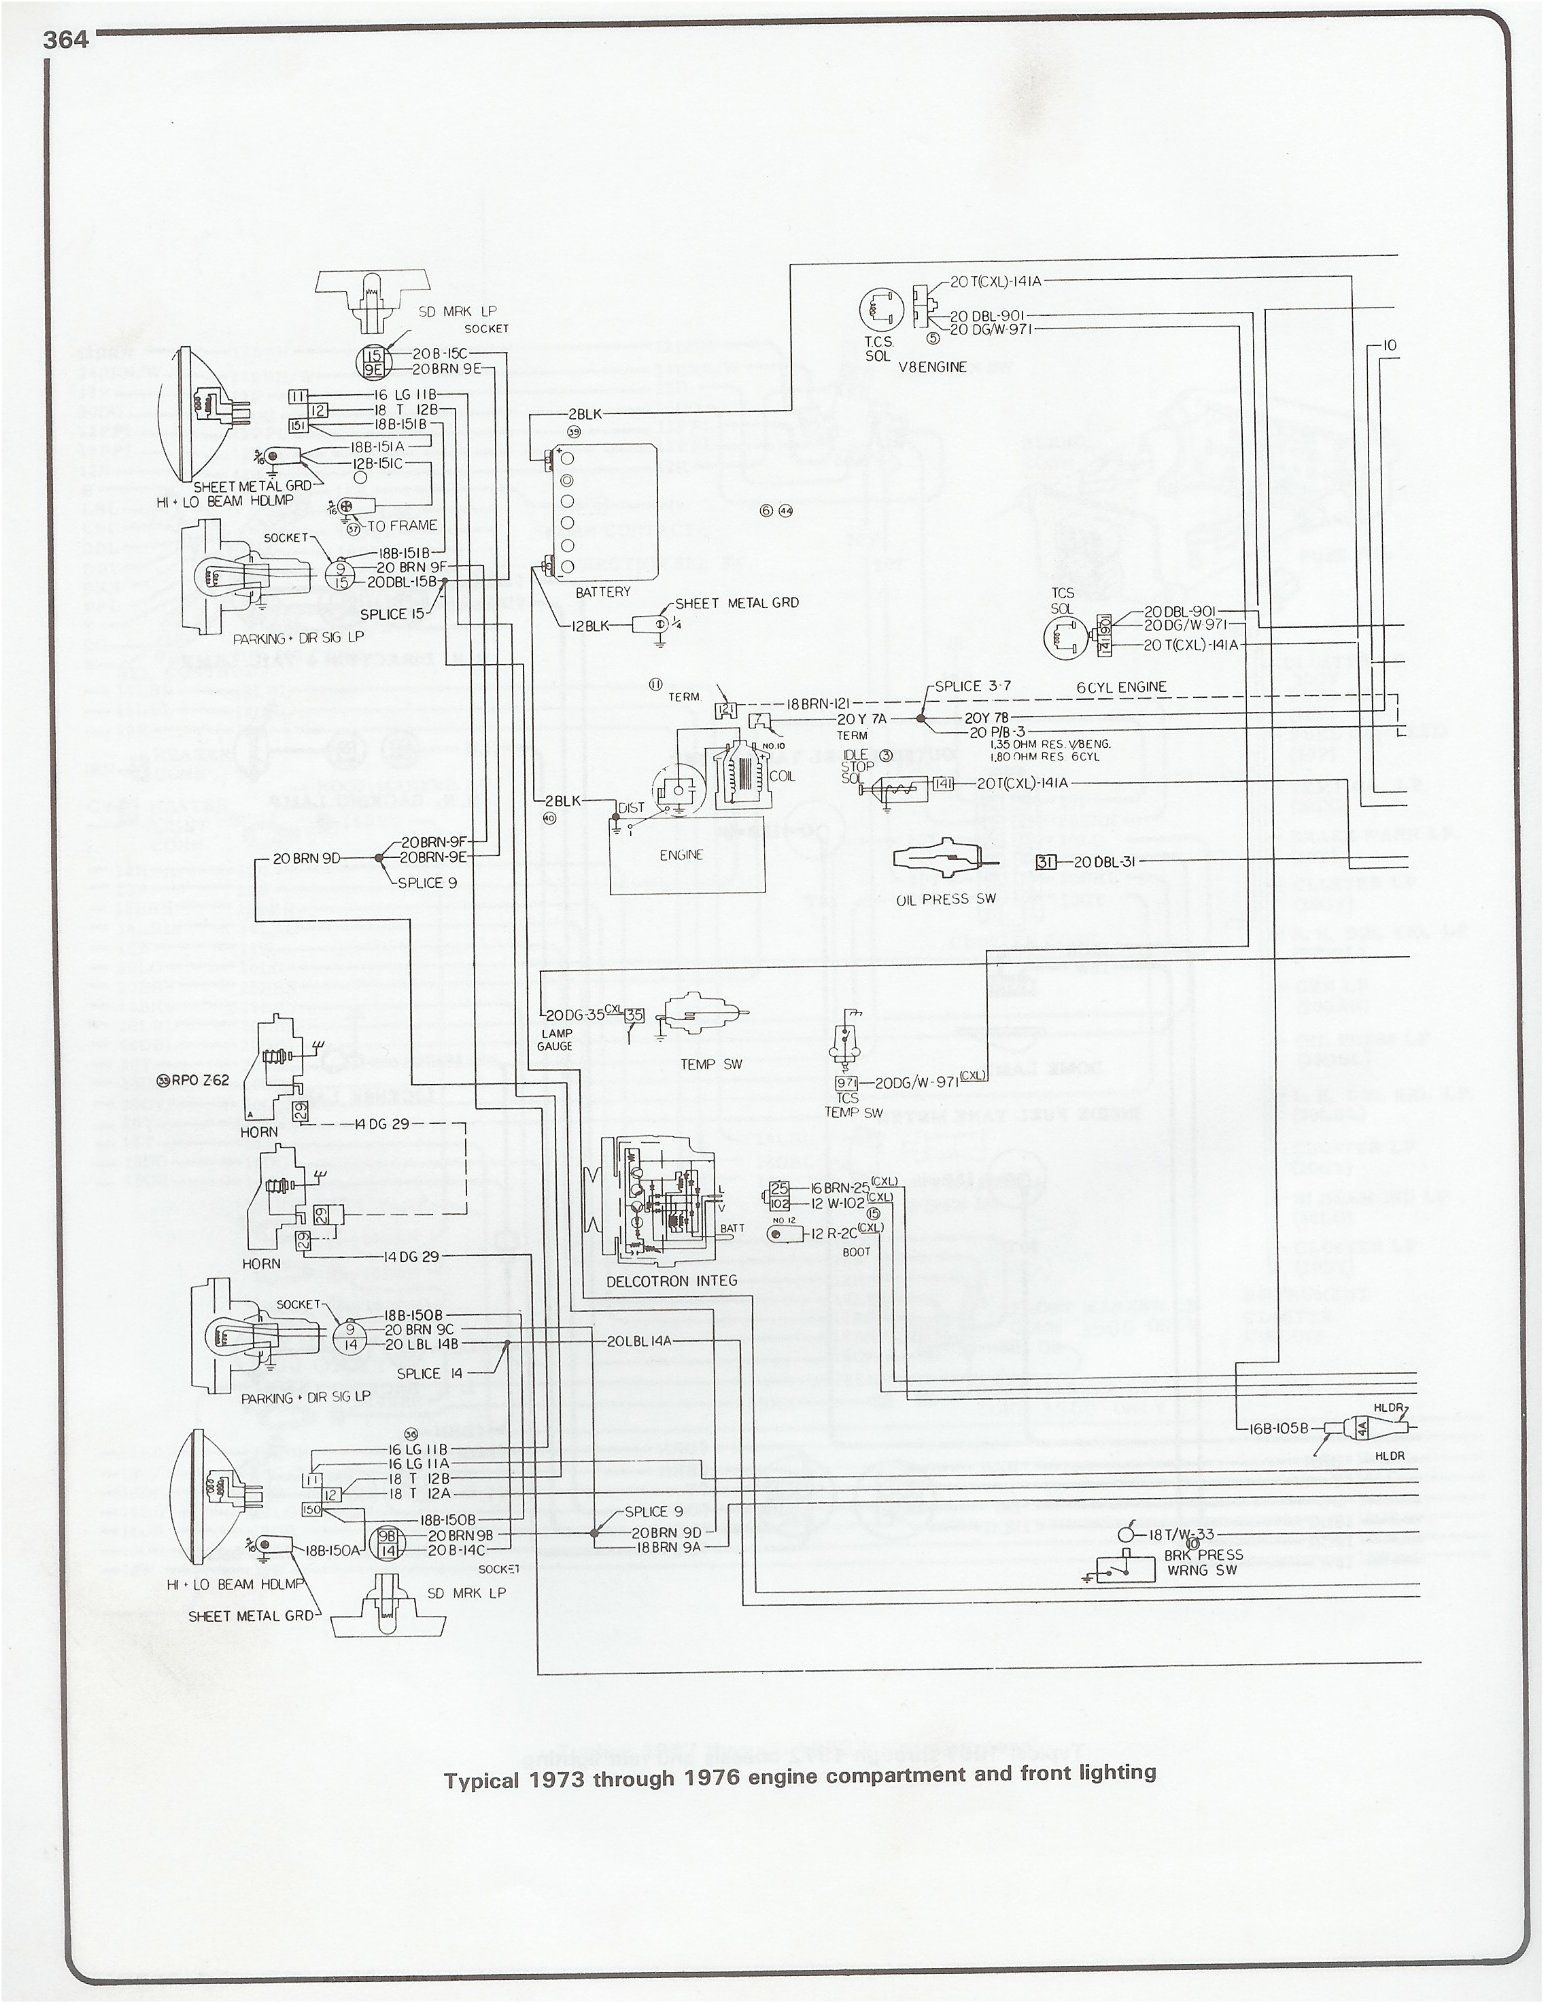 small resolution of engine wiring diagram 75 350 ci chevy van wiring diagram blog 1976 350 chevy engine diagram